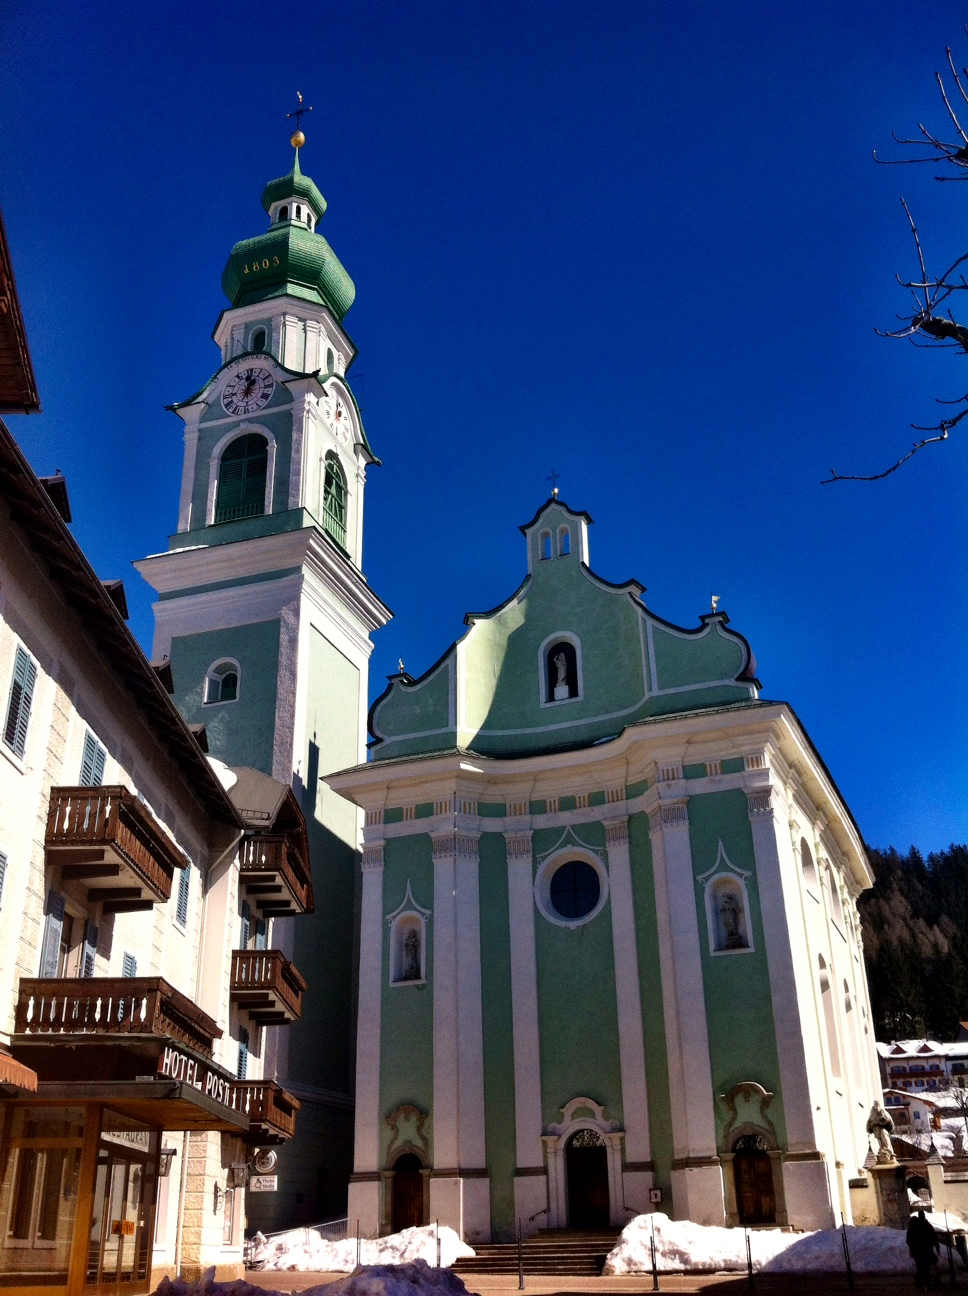 Toblach in the South Tyrol